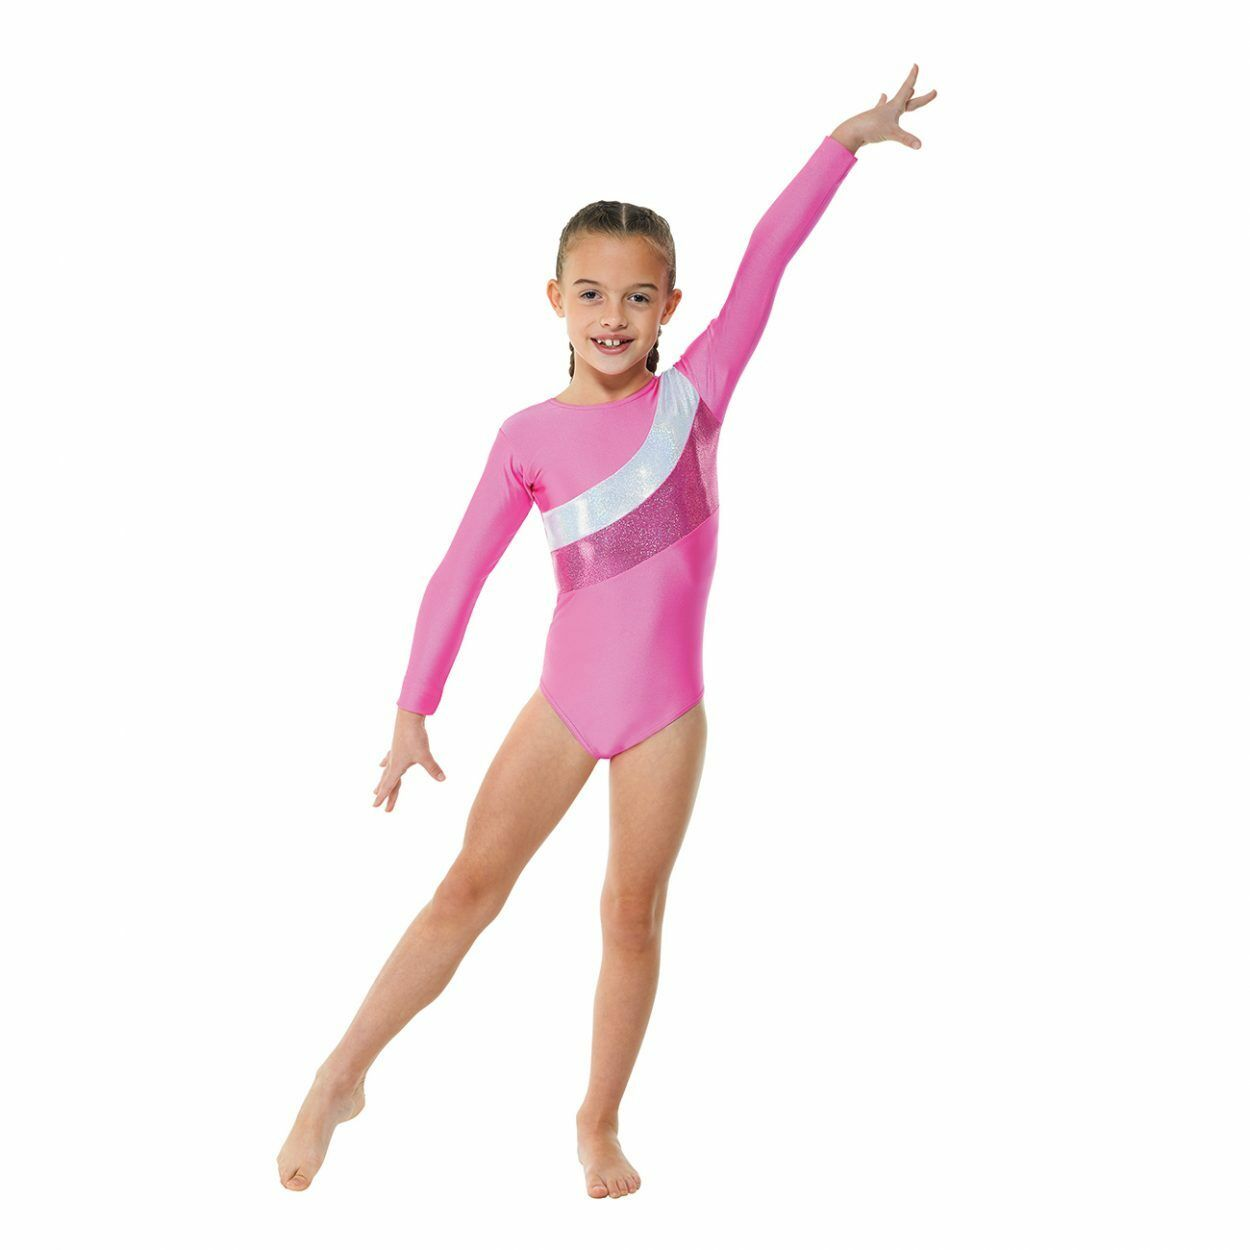 LONG SLEEVED GYMNASTICS LEOTARD NYLON LYCRA IN PINK OR PURPLE (GYM19)